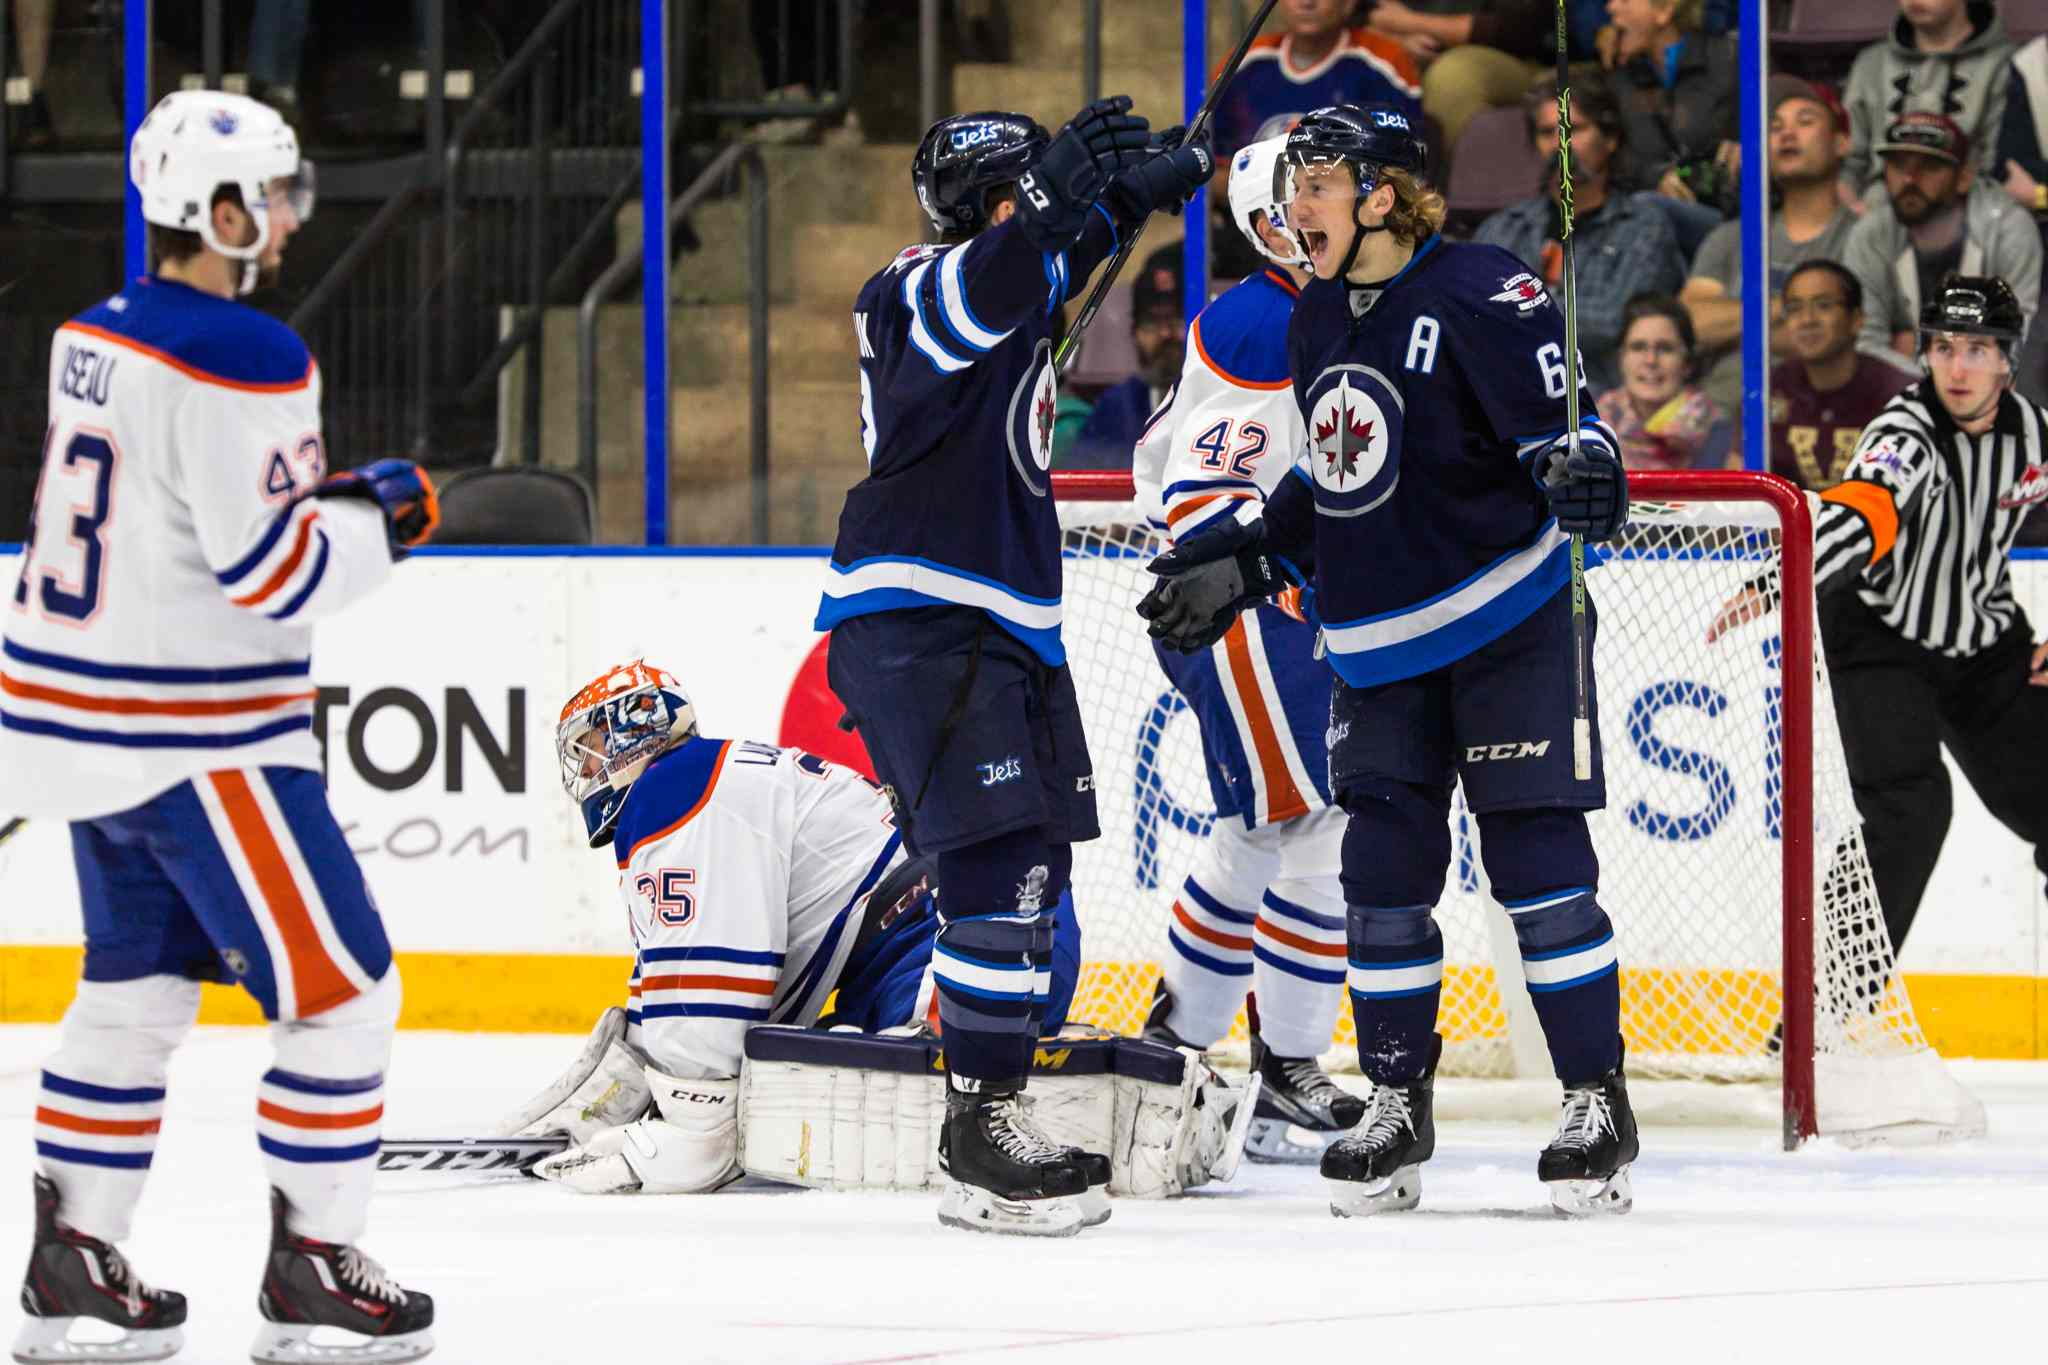 Scott Kosmachuk celebrates his game winning goal with alternate captain Ryan Olsen against the Edmonton Oilers at the South Okanagan Events Center in Penticton, B.C., this afternoon.